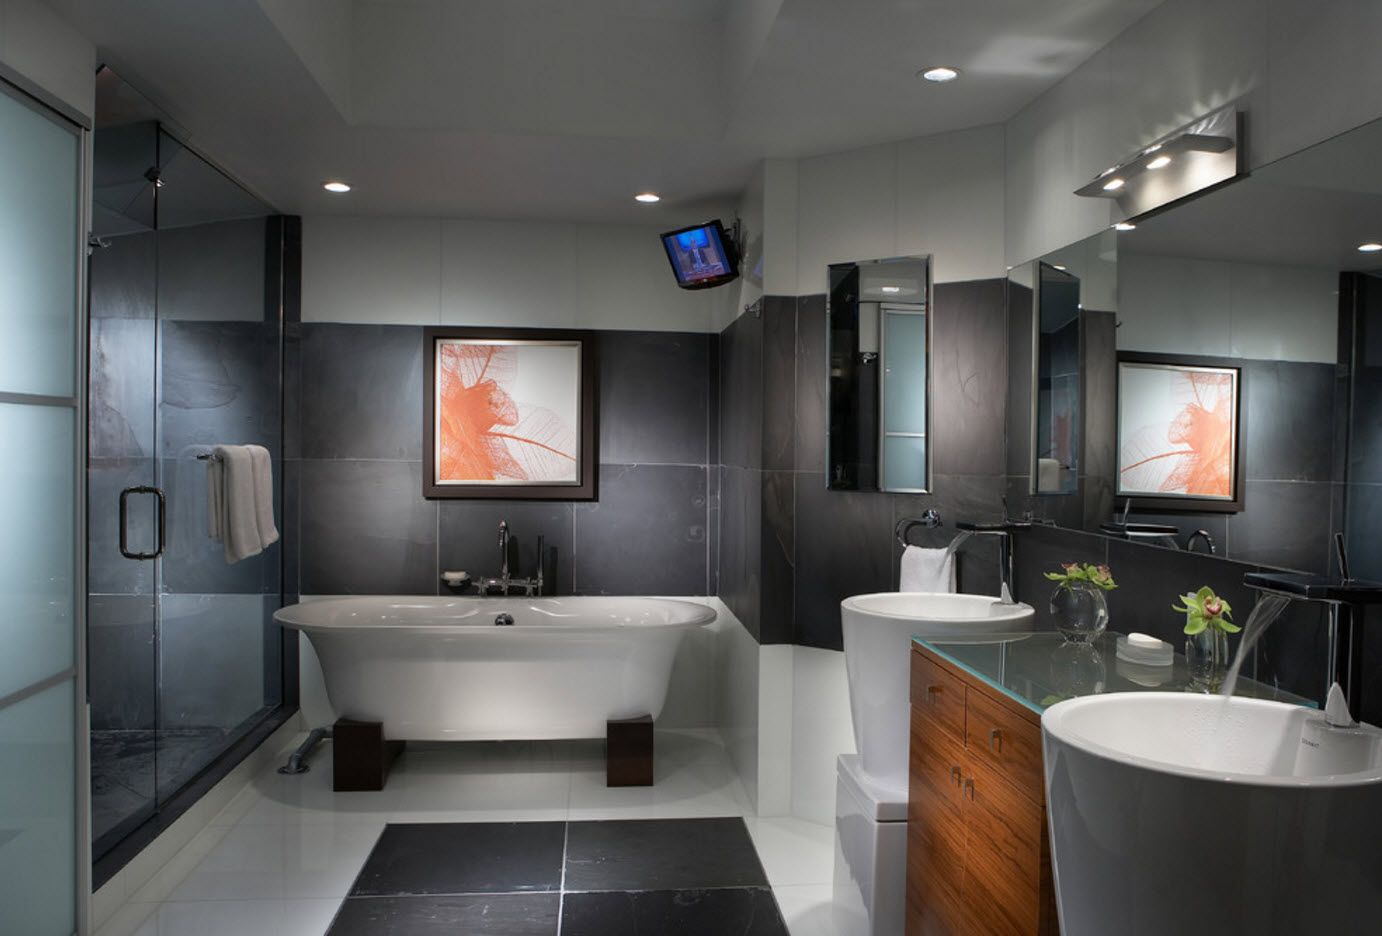 Gray decor of the modern bathroom with bright picture